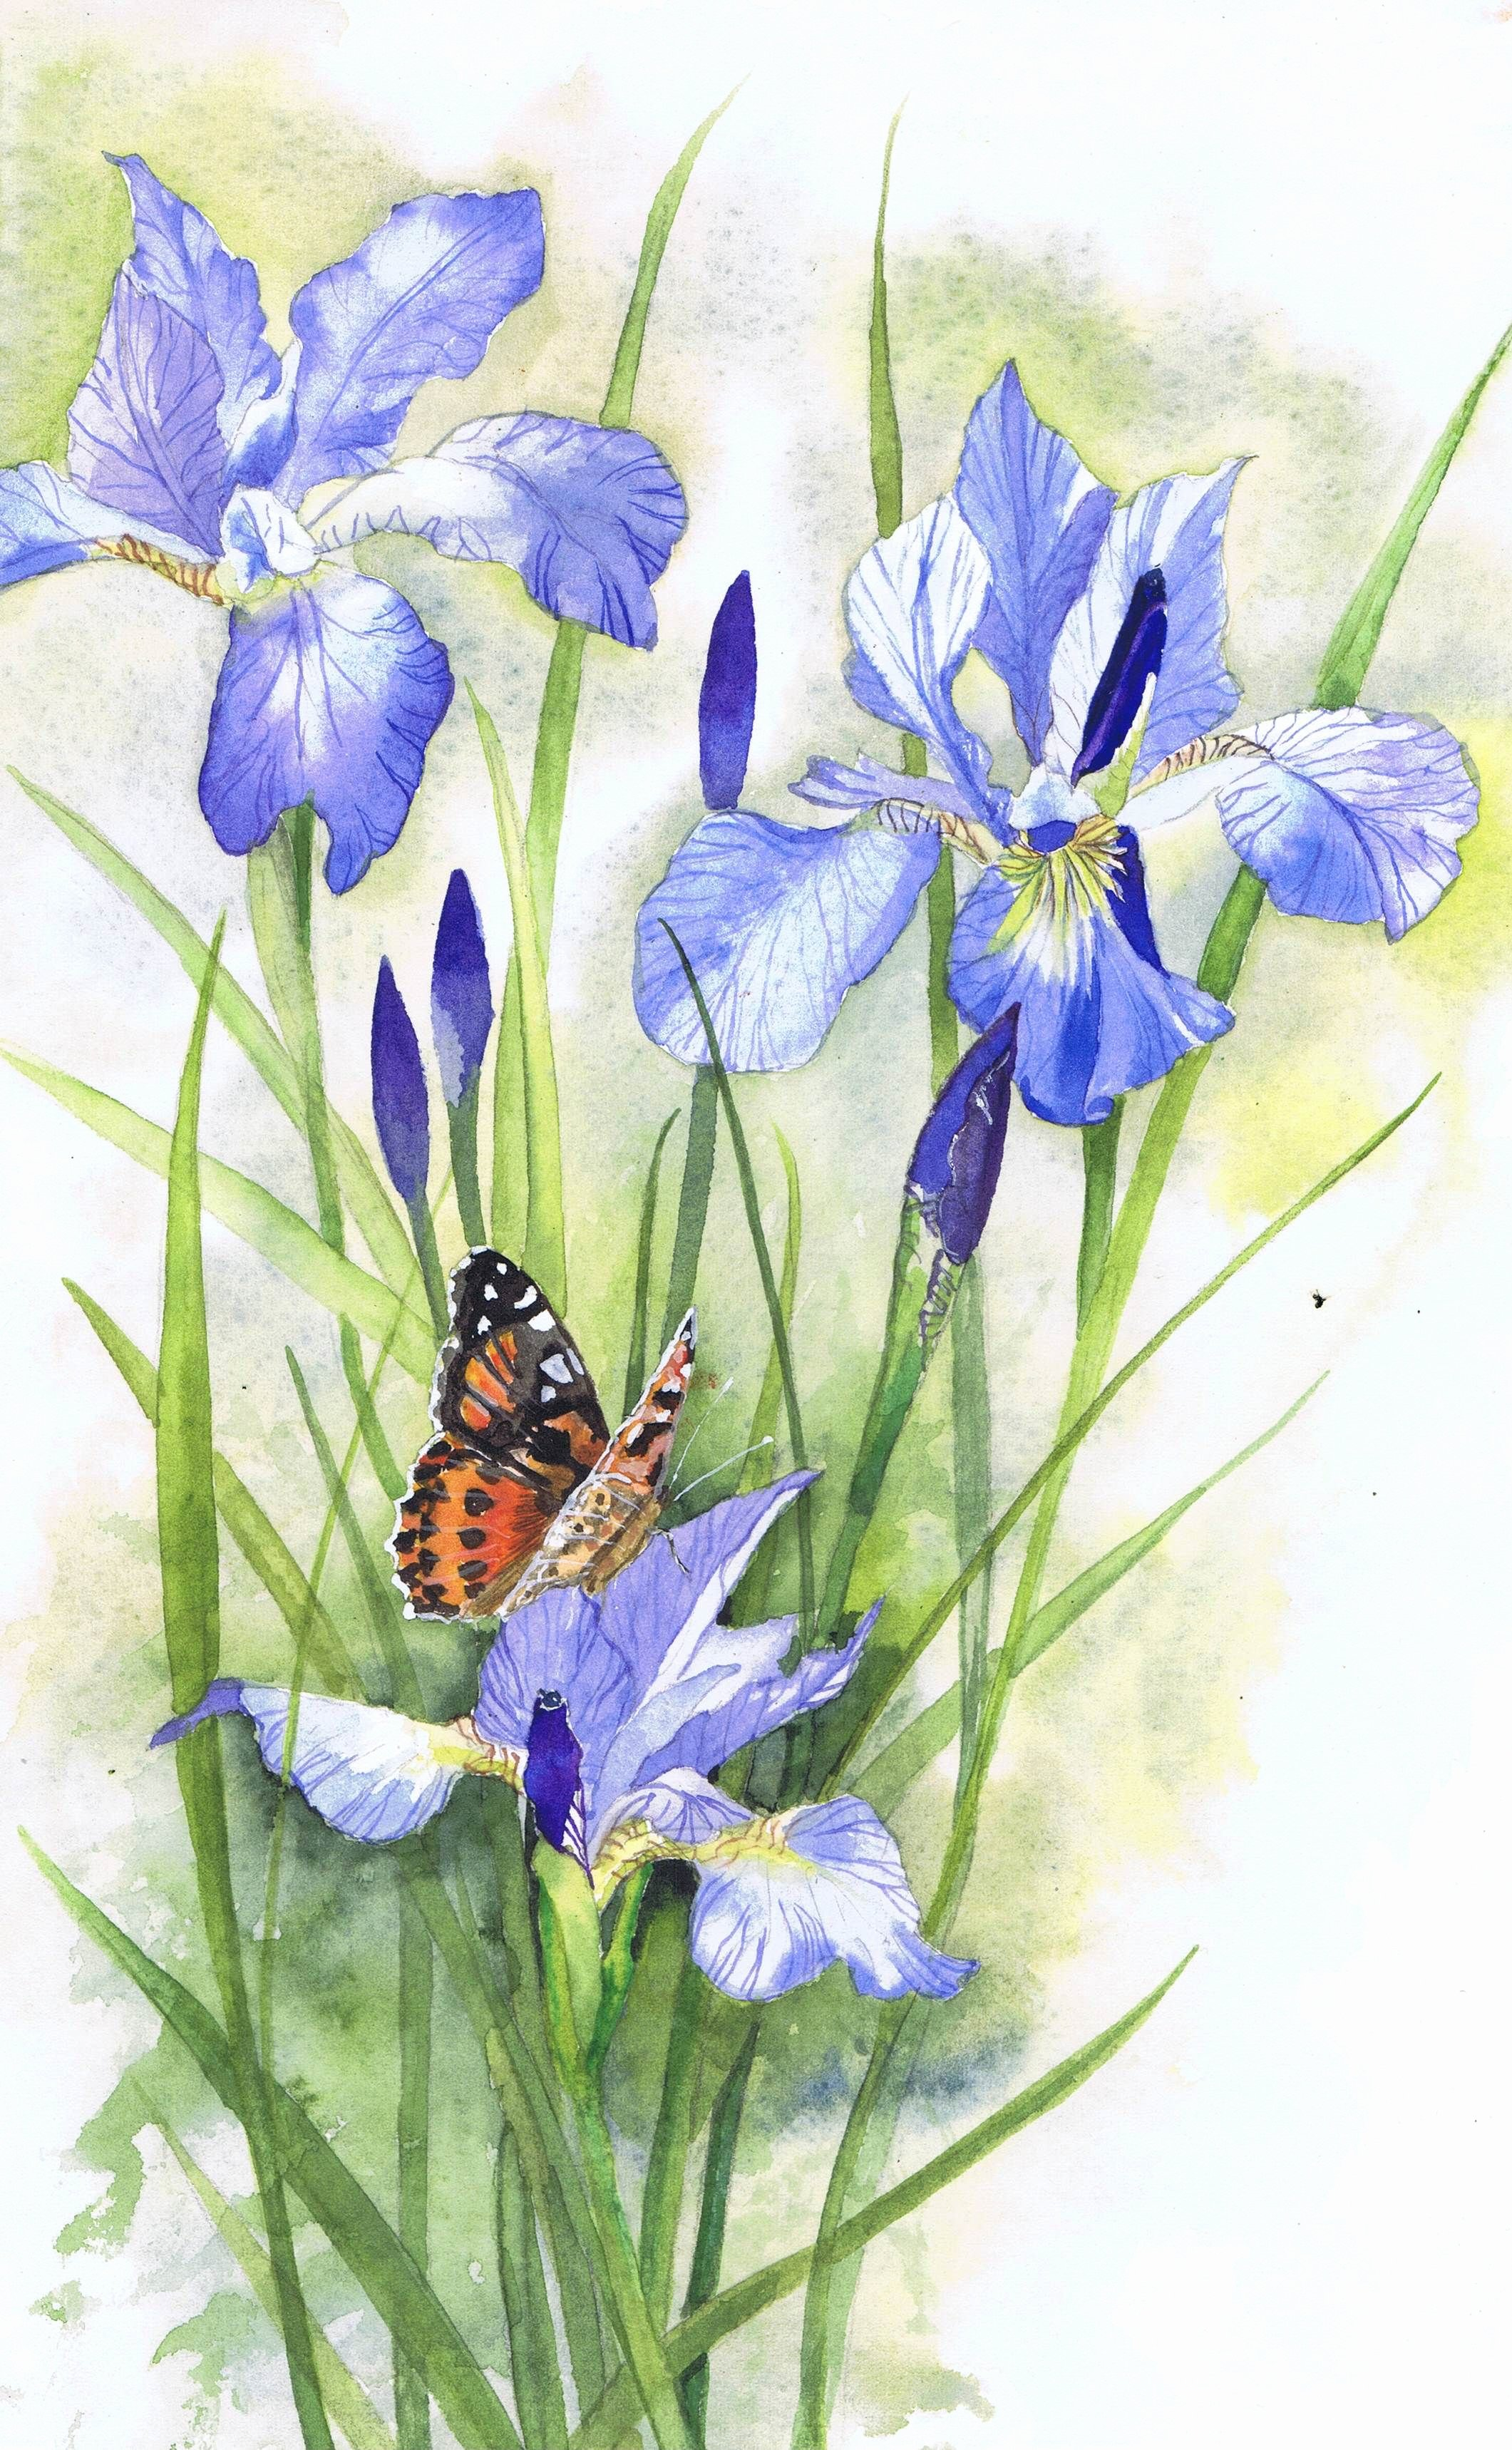 Butterfly and Flower Paintings Best Of Painted Lady butterfly On Irises Watercolour Painting by Julie Horner Art Irysy